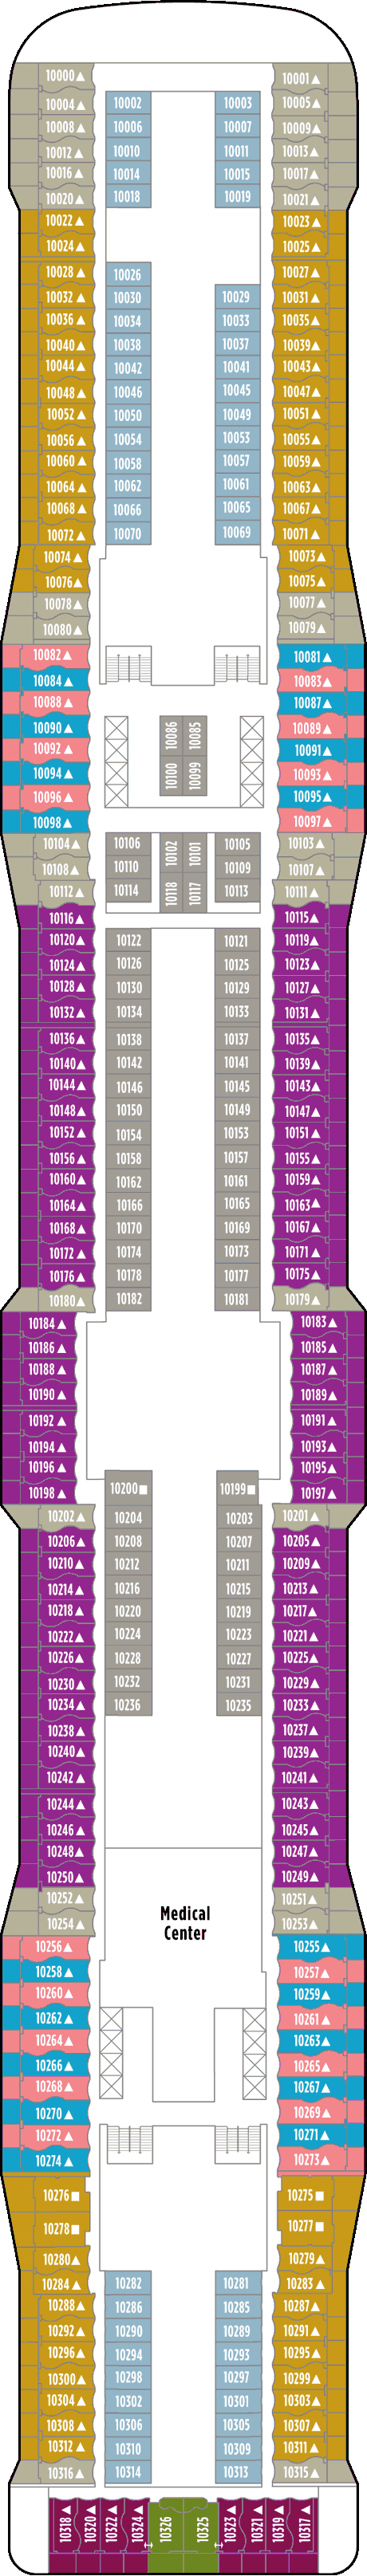 Norwegian Epic Deck 10 layout